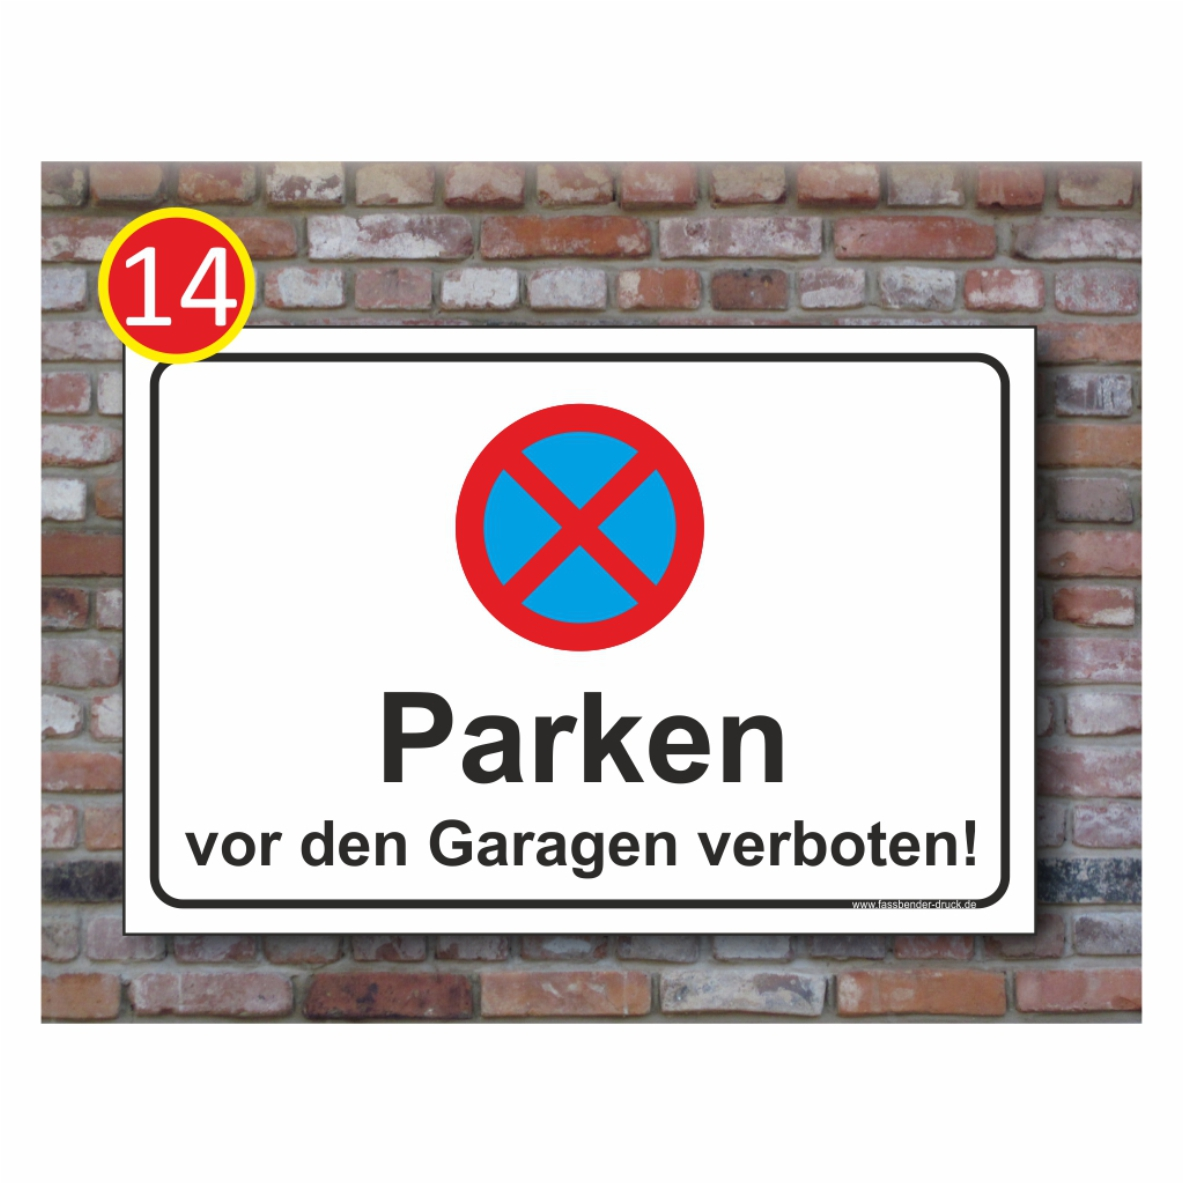 parkverbot schild parken vor den garagen absolut halteverbot verboten 3mm pv14 ebay. Black Bedroom Furniture Sets. Home Design Ideas